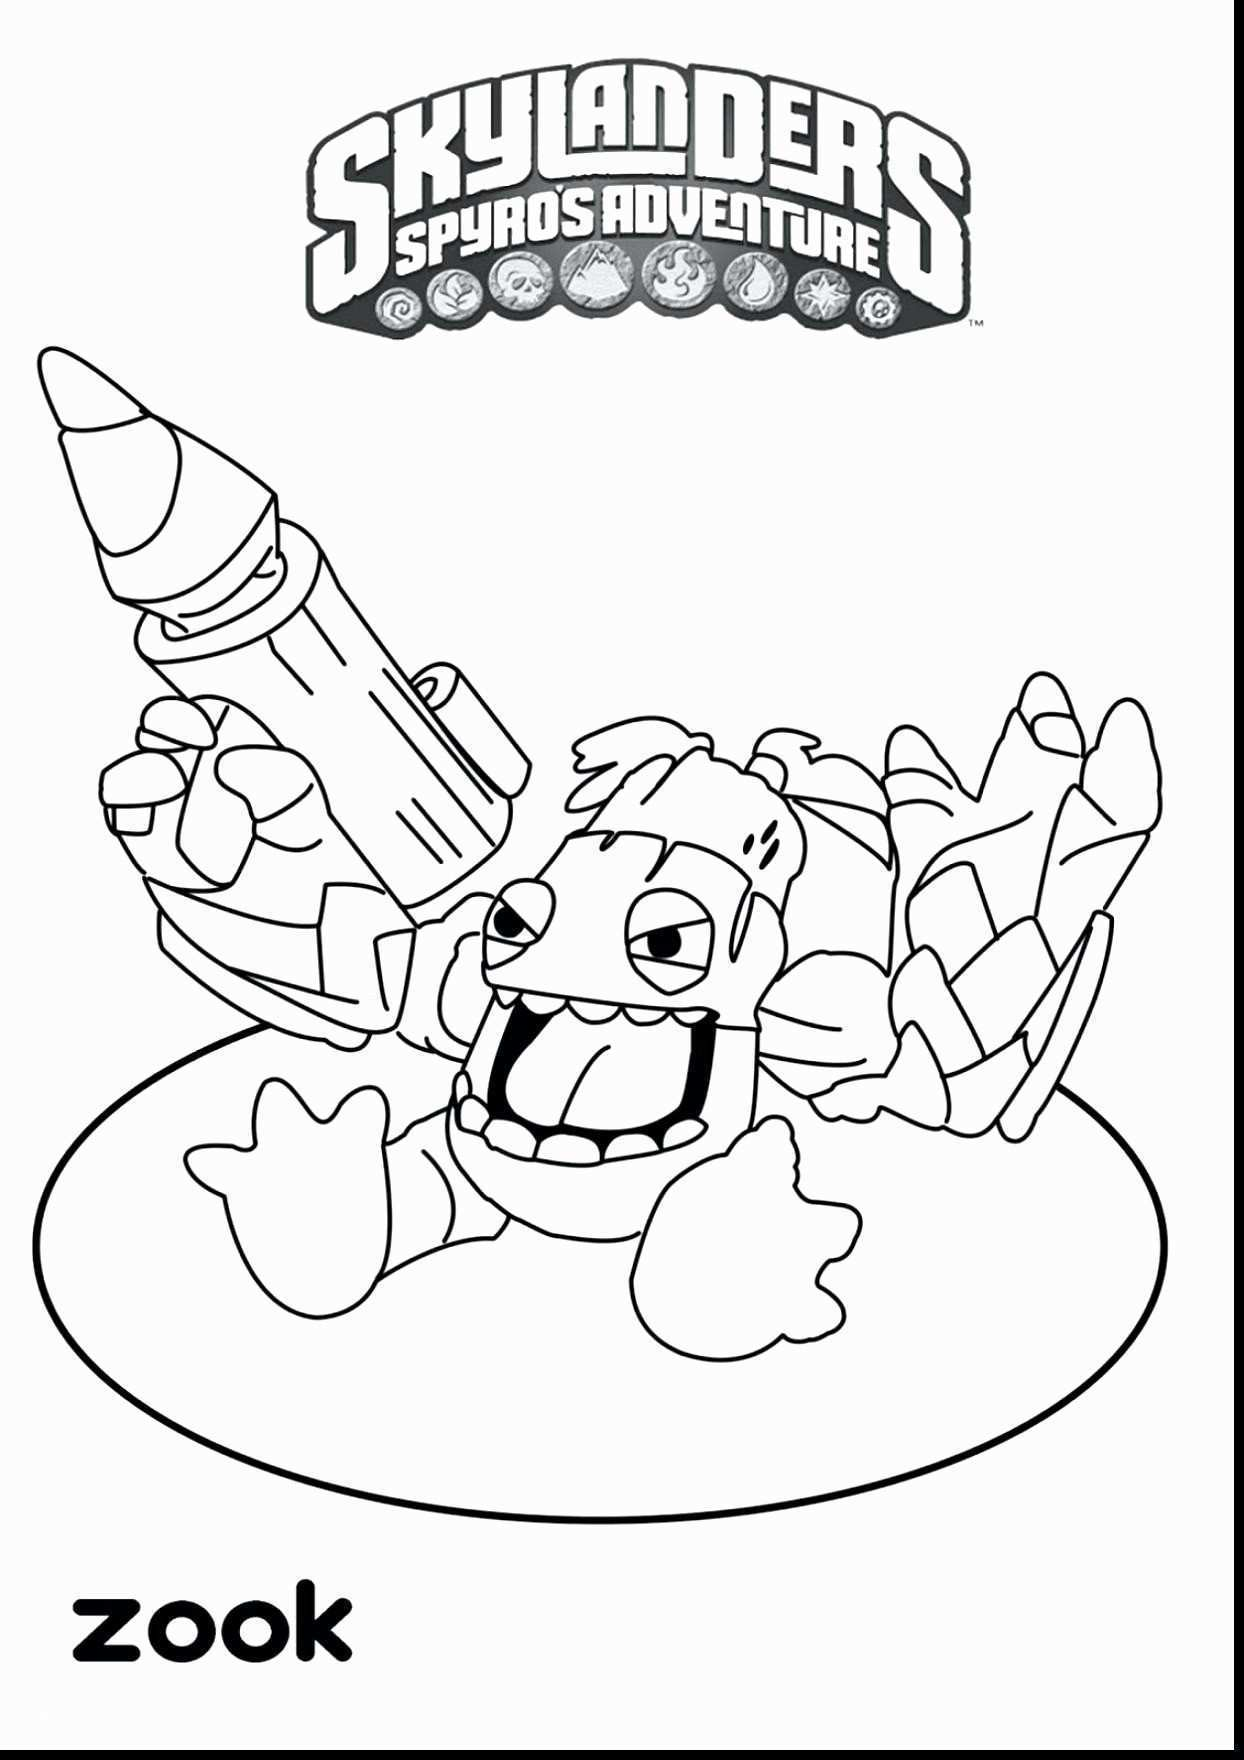 Coloring Page Websites heathermarxgallery